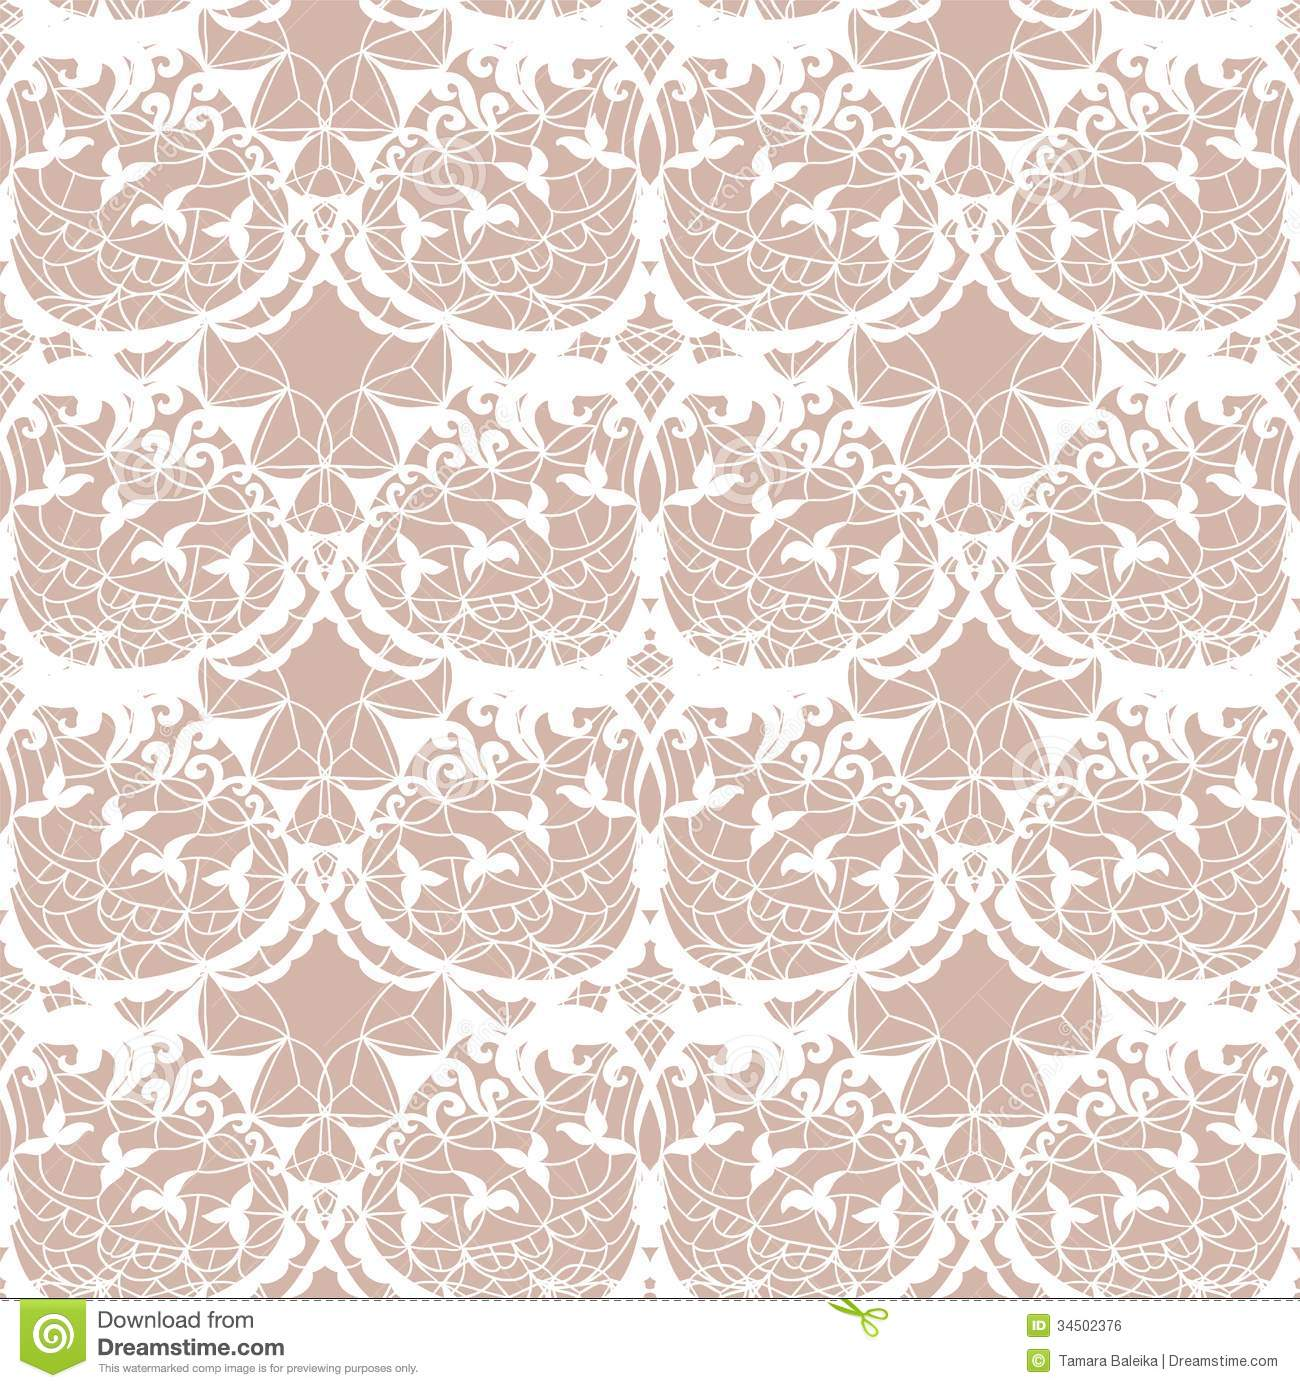 Lace Vector Fabric Seamless Pattern Royalty Free Stock